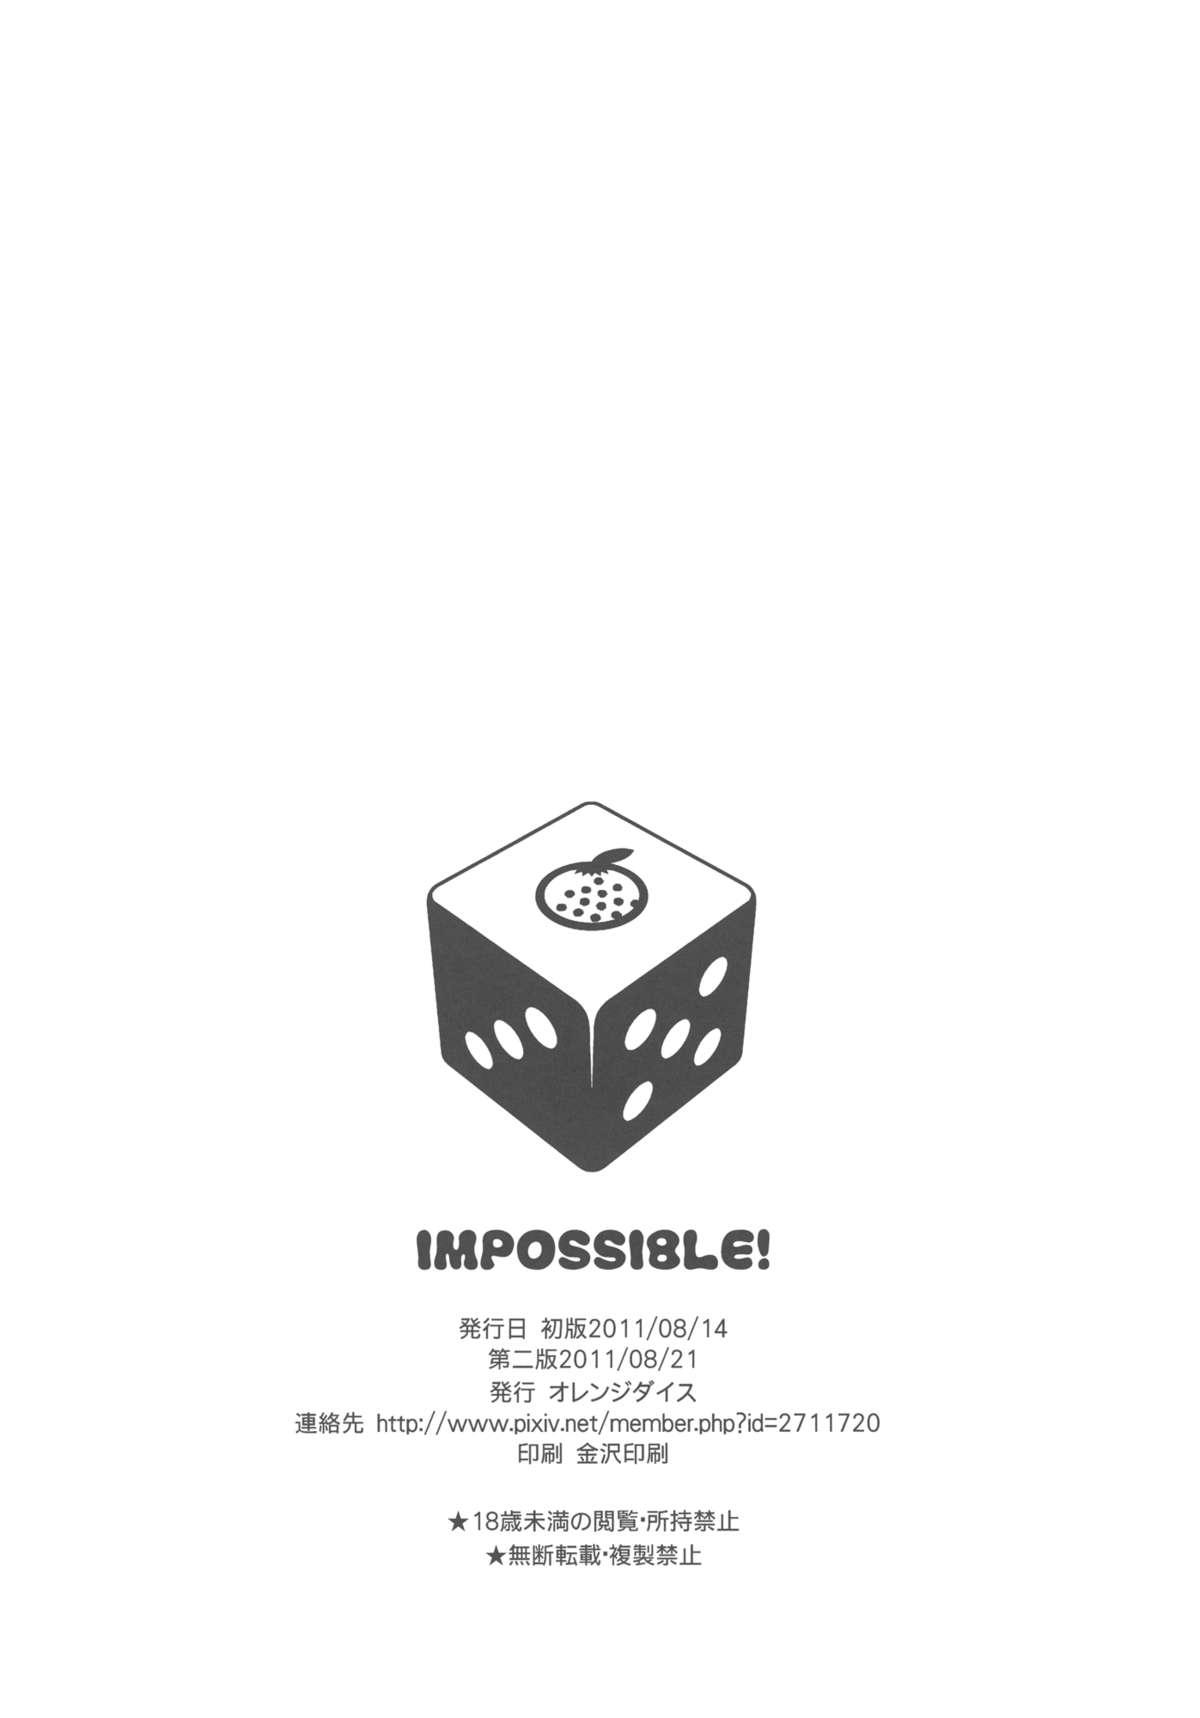 IMPOSSIBLE! 35